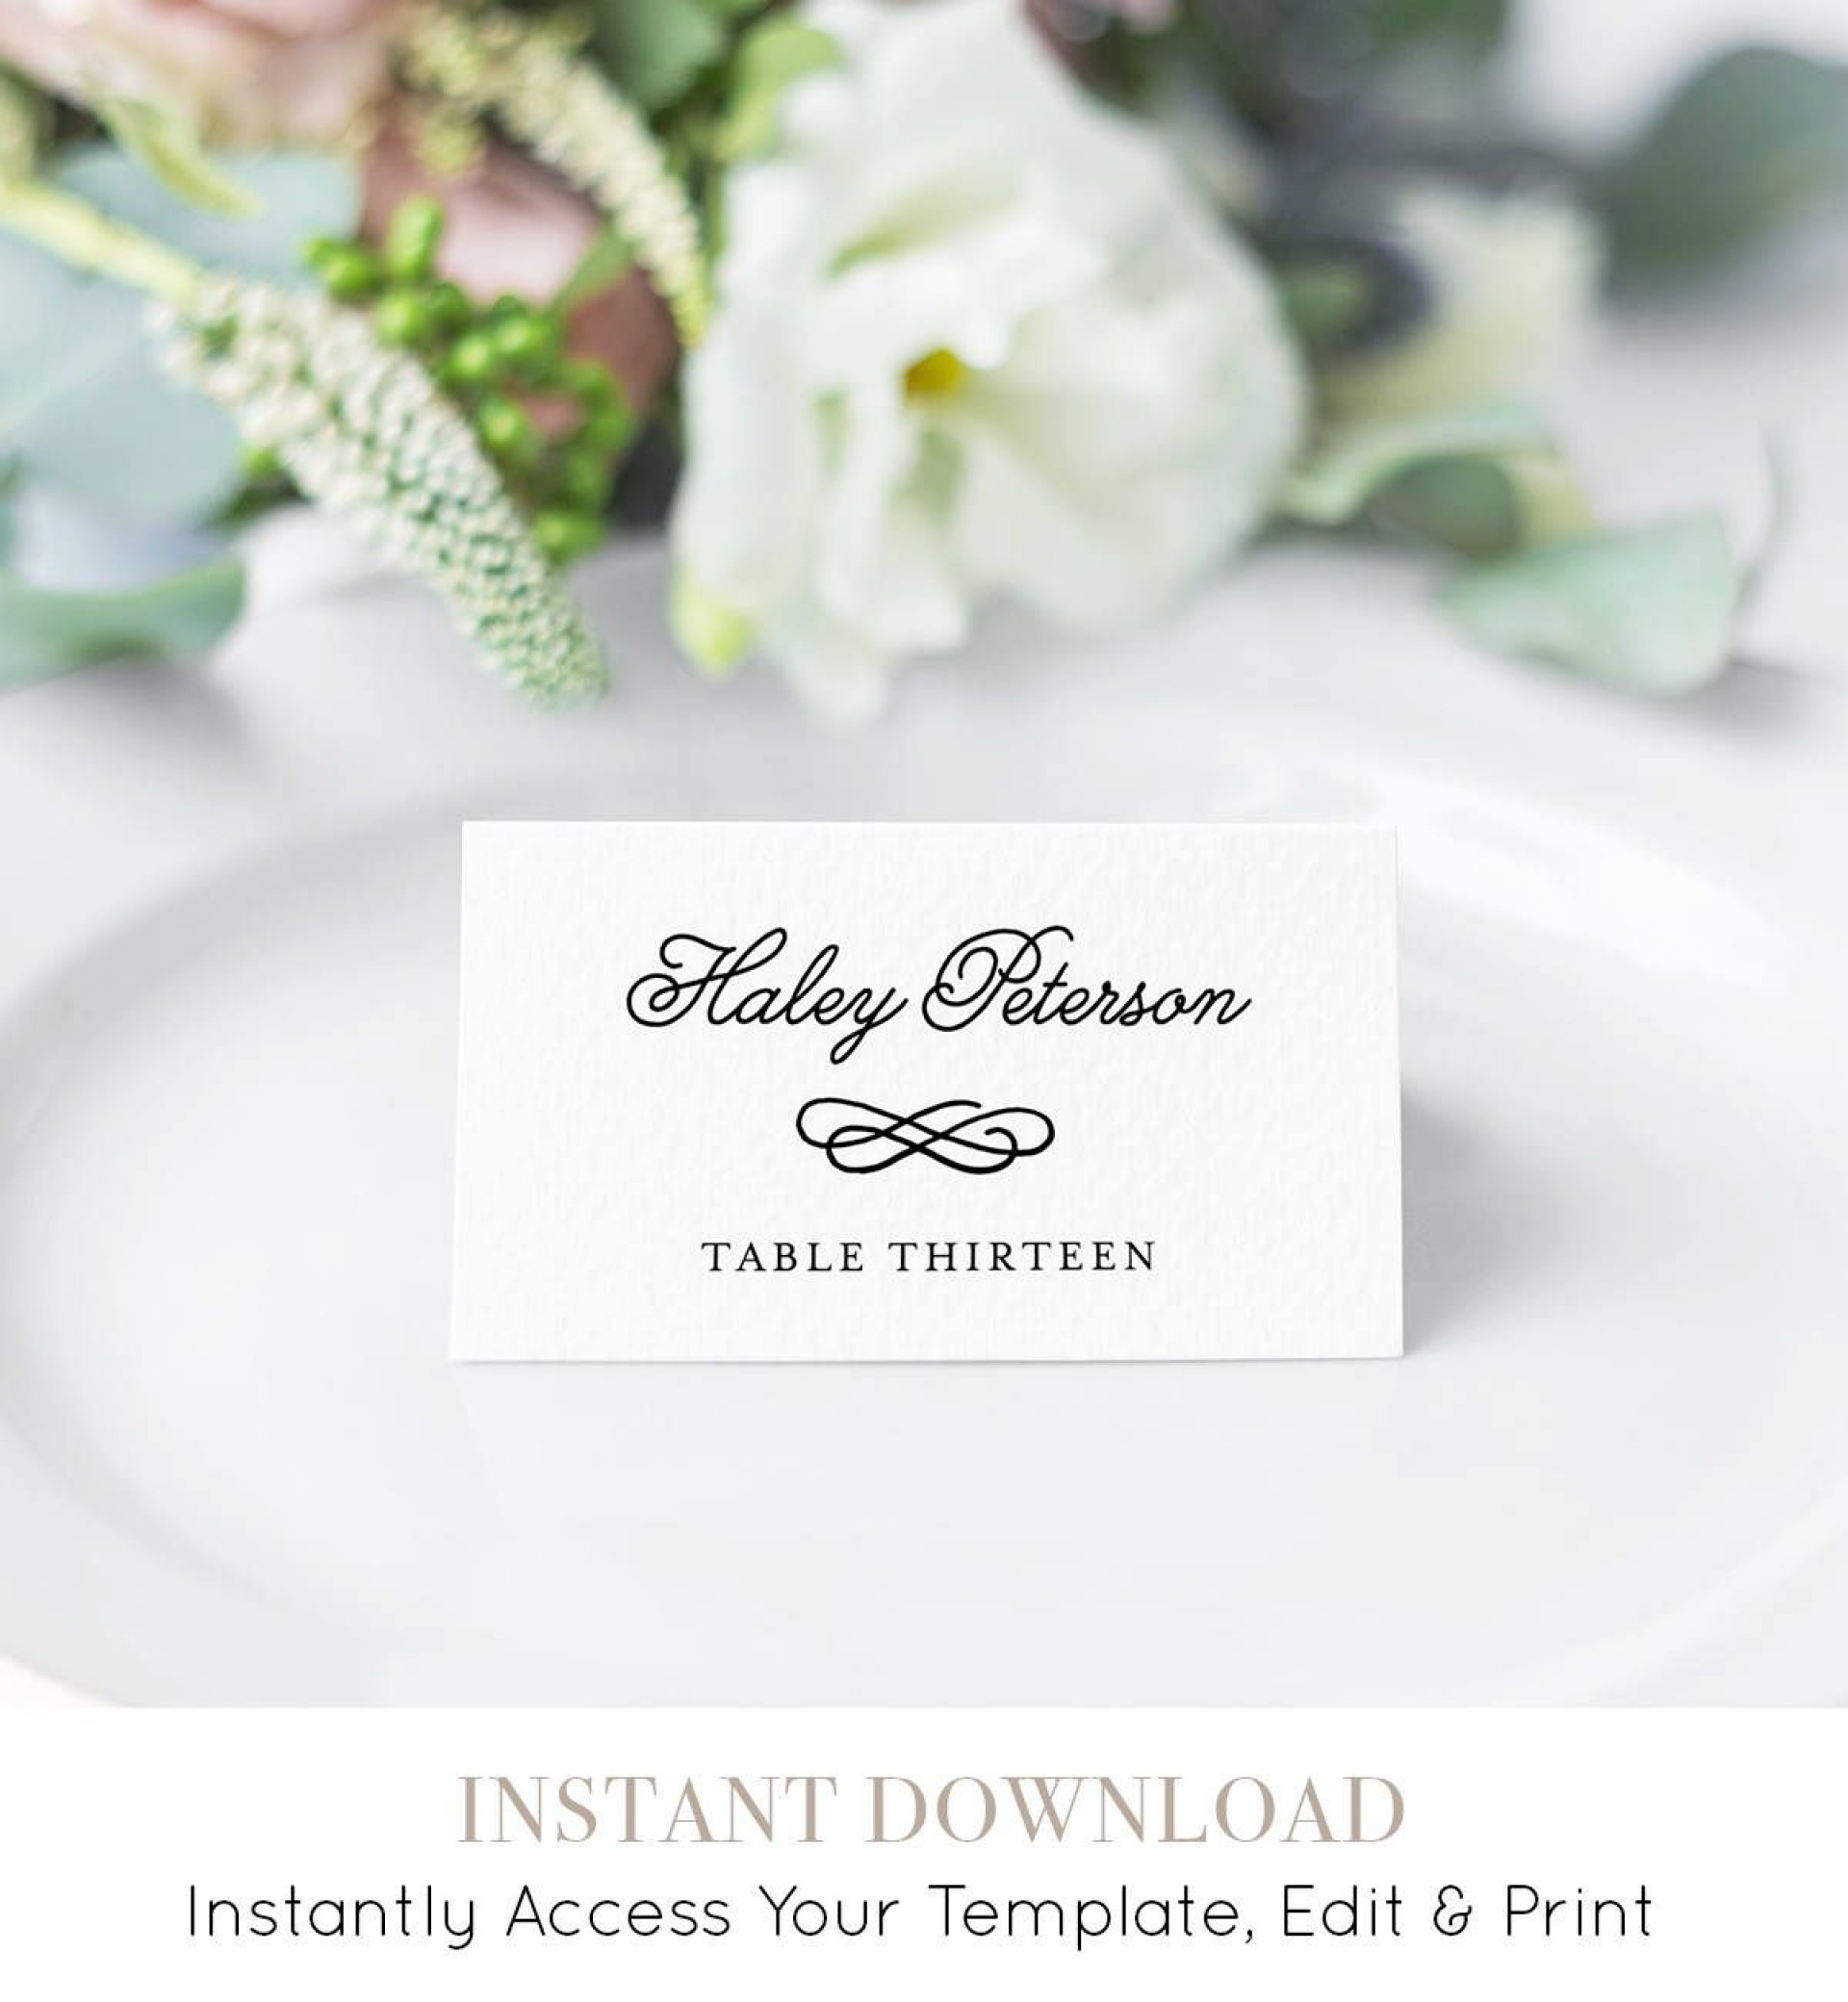 006 Impressive Wedding Name Card Template Example  Free Download Design Sticker Format1920